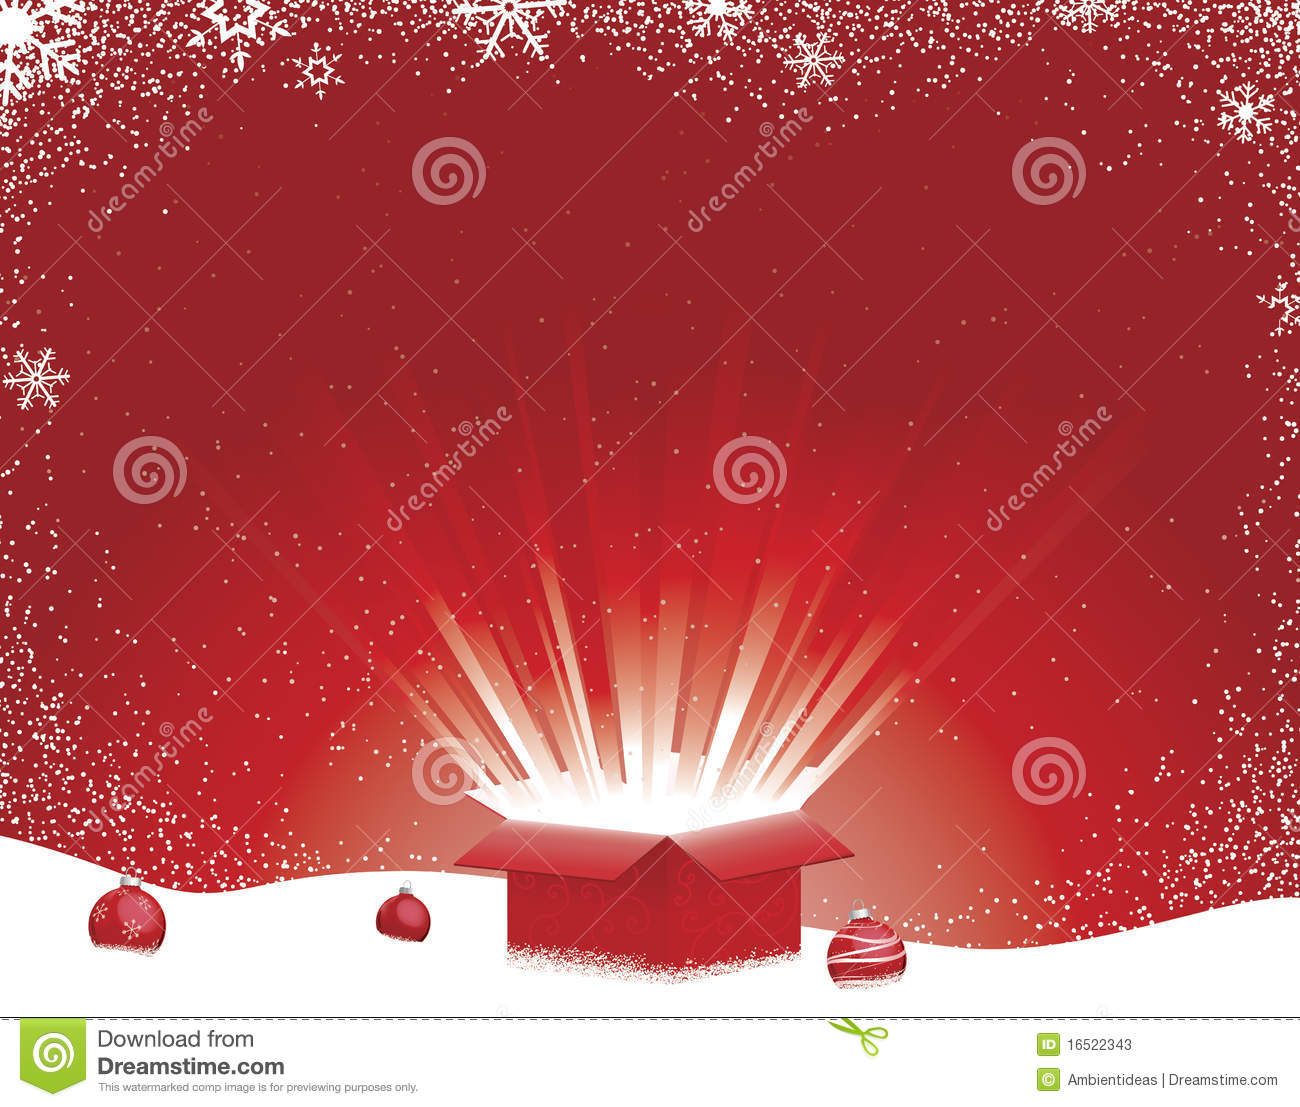 Gift Box Exploding Open With Rays Of Light On Snowflake And Snow